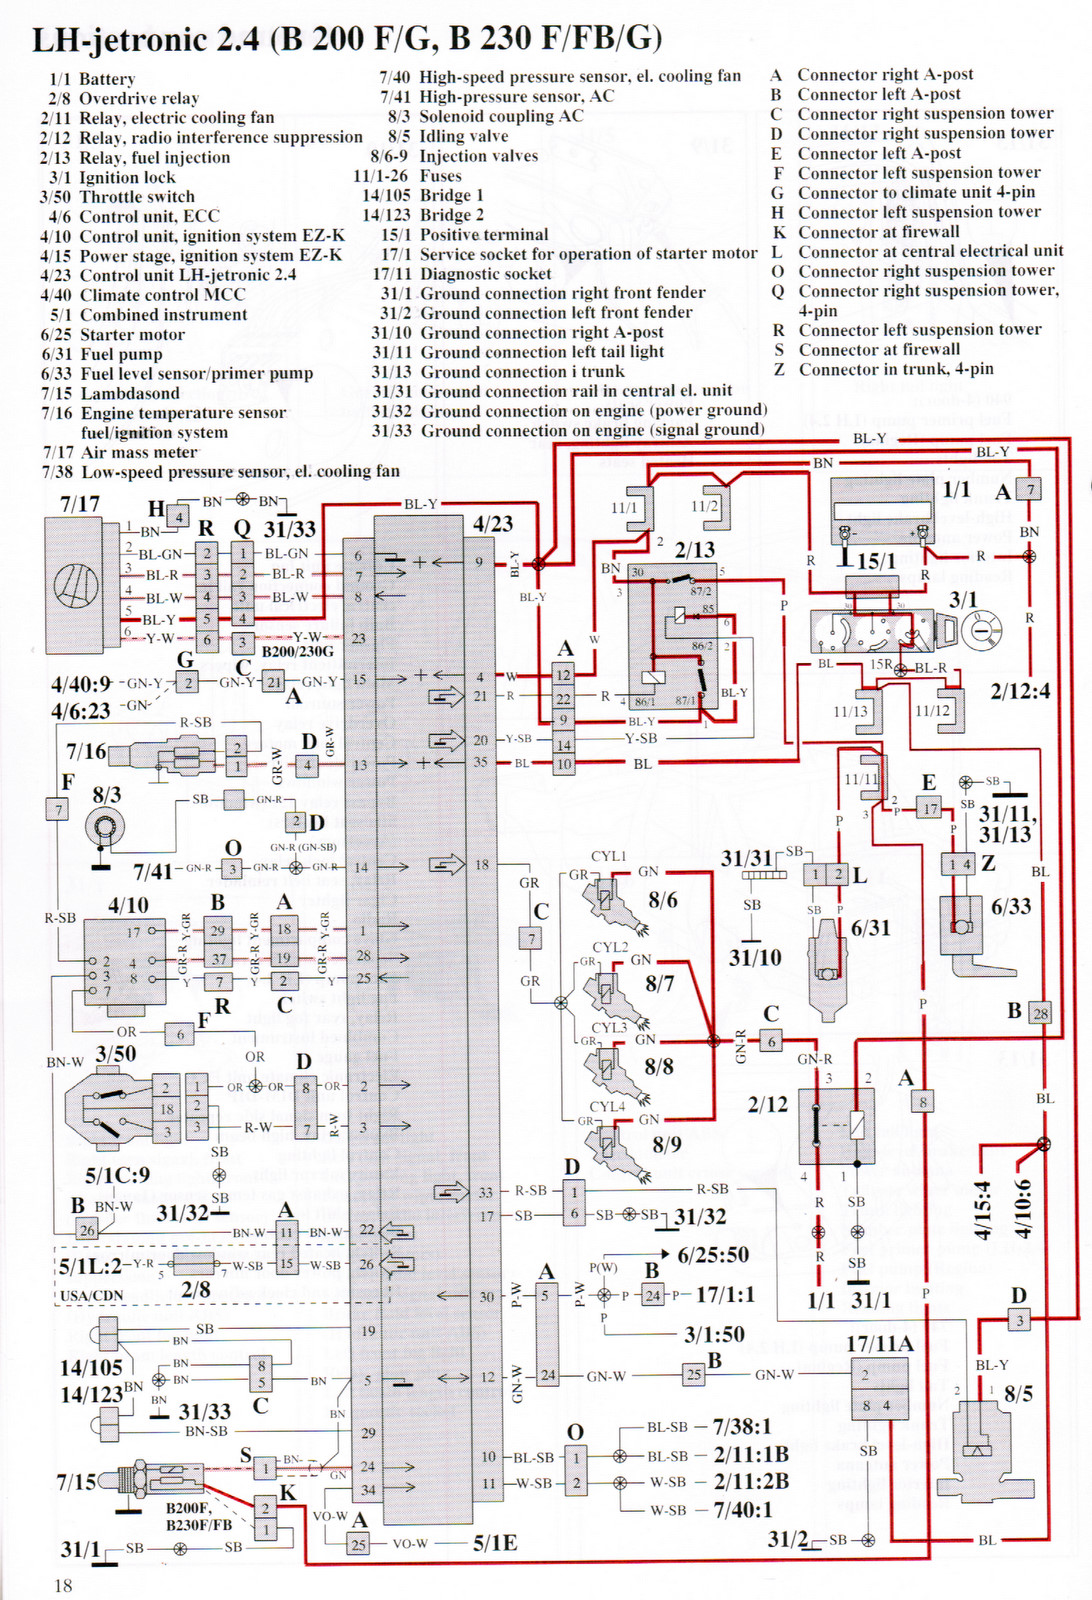 1991 240 Volvo Fuel Pump Wiring Diagram Diagrams 1993 740 System Free Engine Image For 1989 1990 Fuse